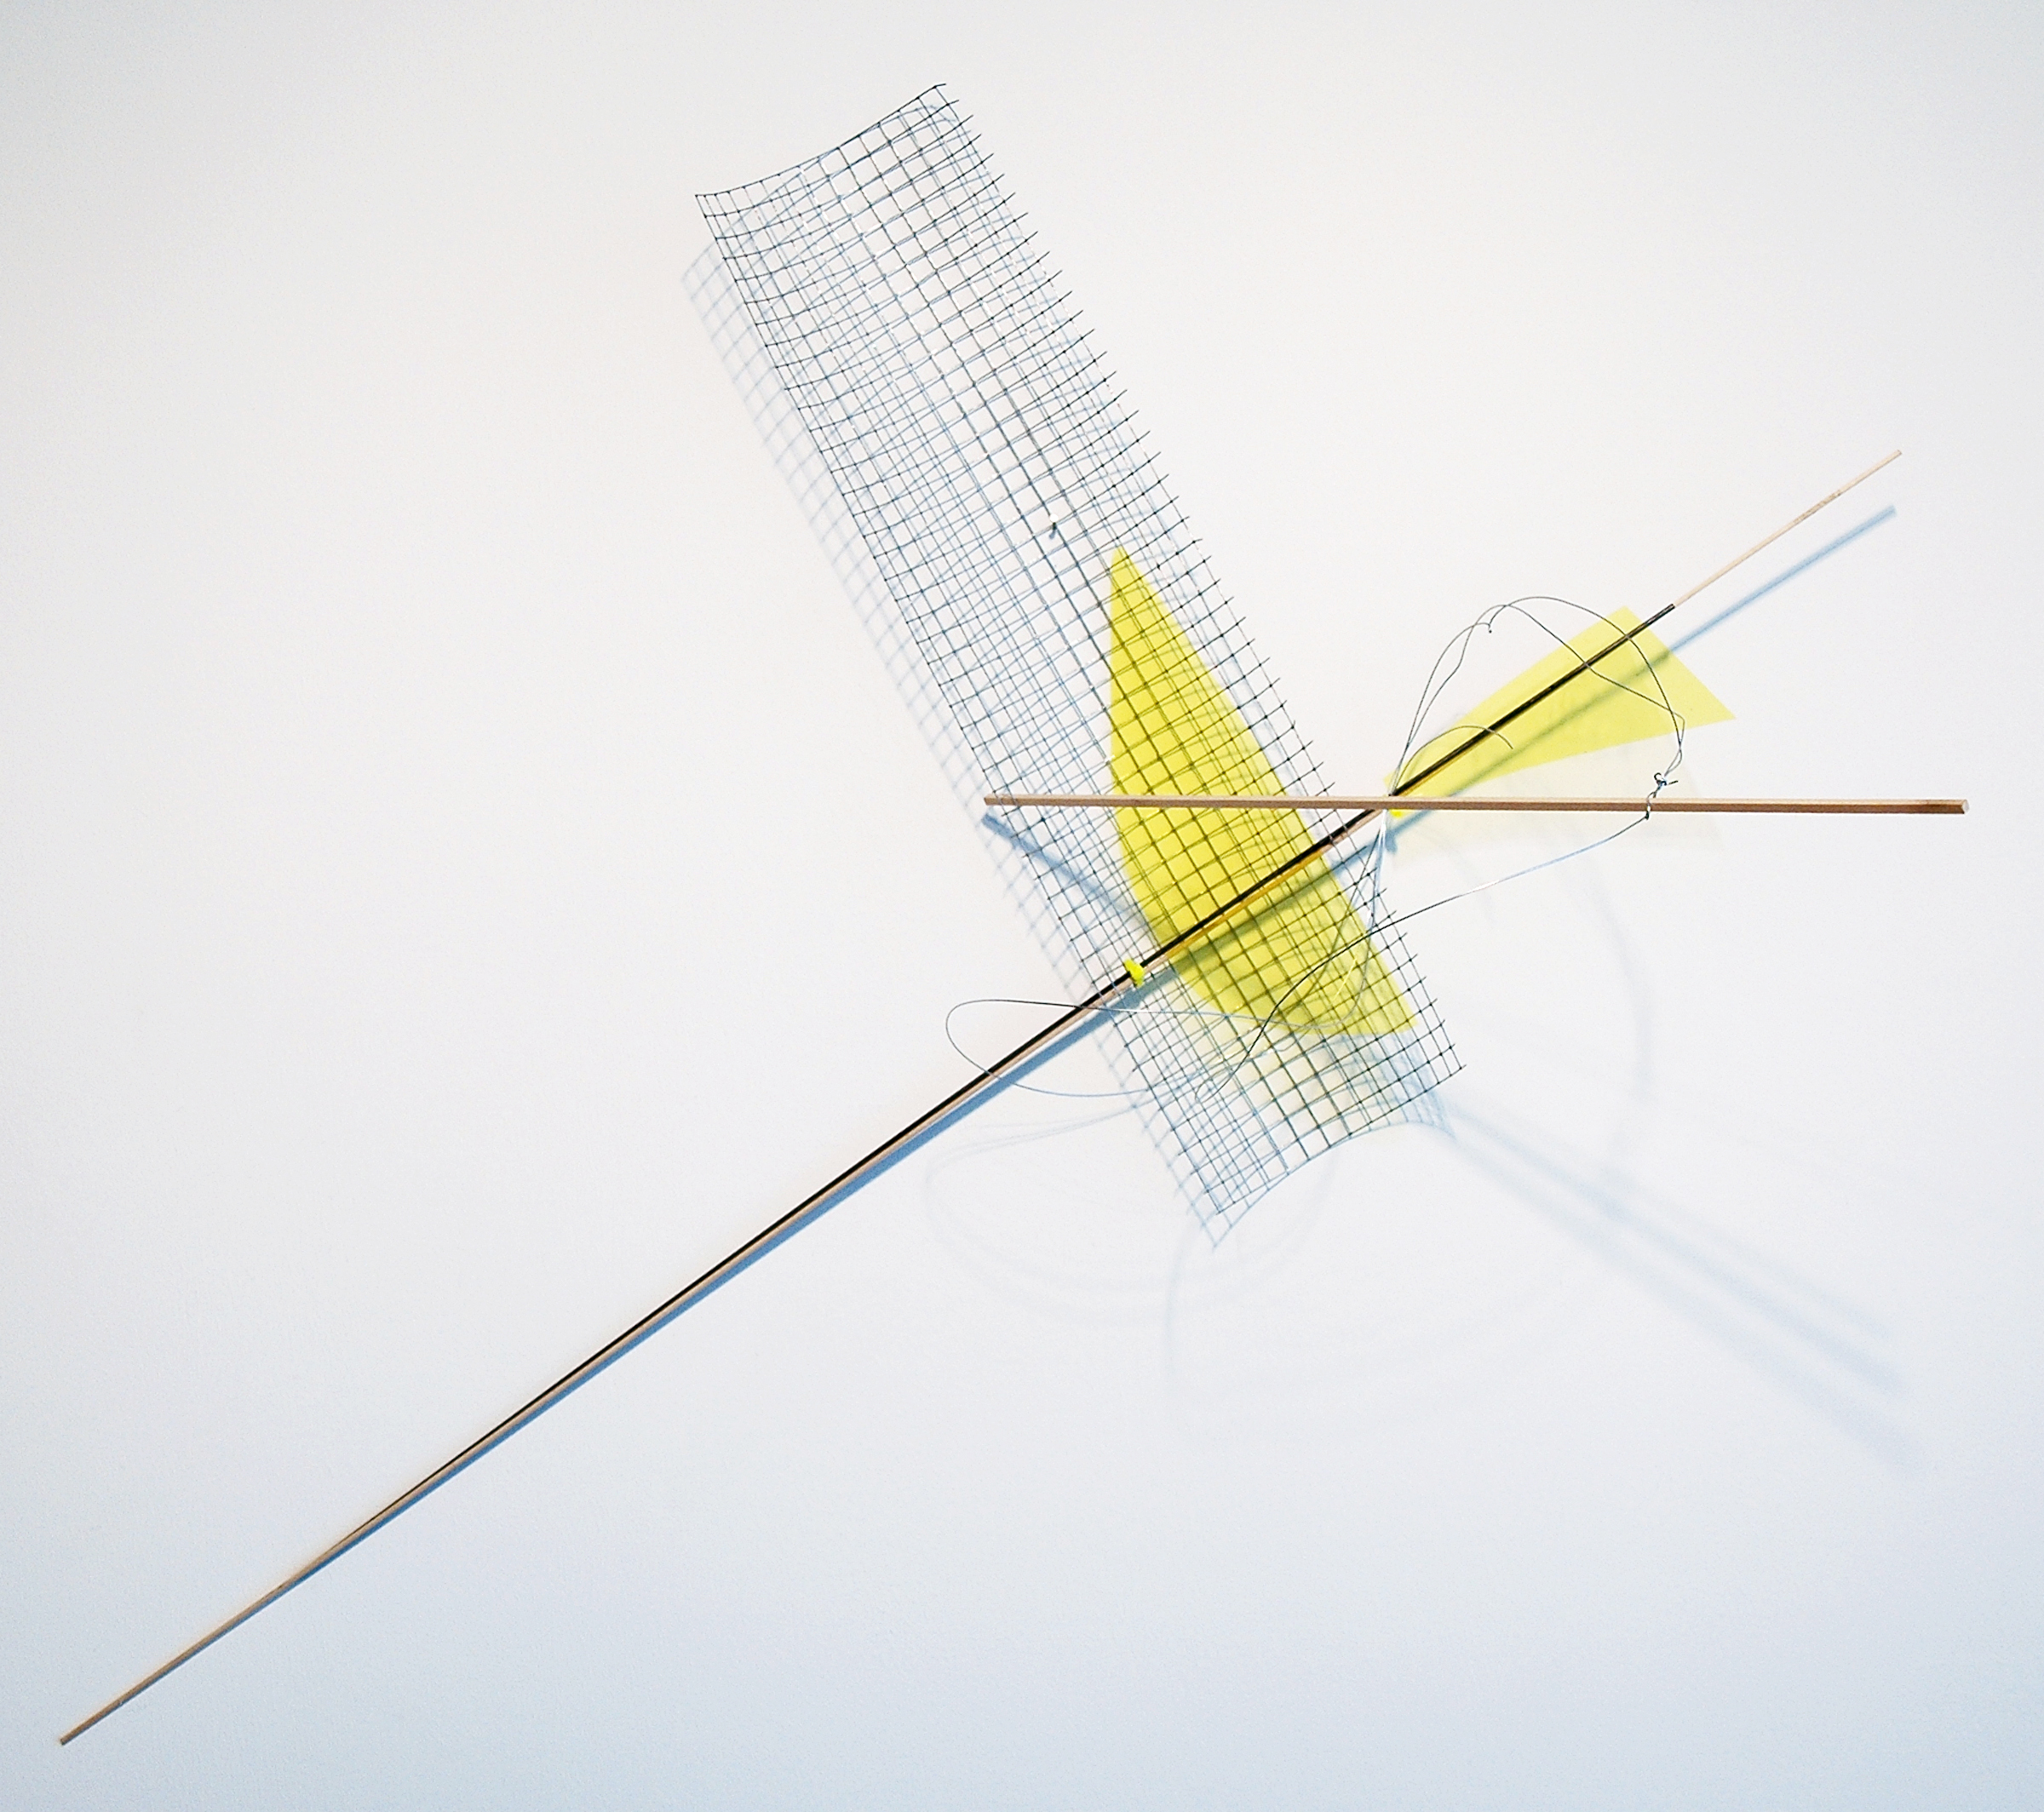 """ALICE CATTANEO   Untitled , 2013, iron netting, balsa wood, iron, yellow acetate, cable ties, wire, 37.5"""" x 40"""" x 17.5"""""""